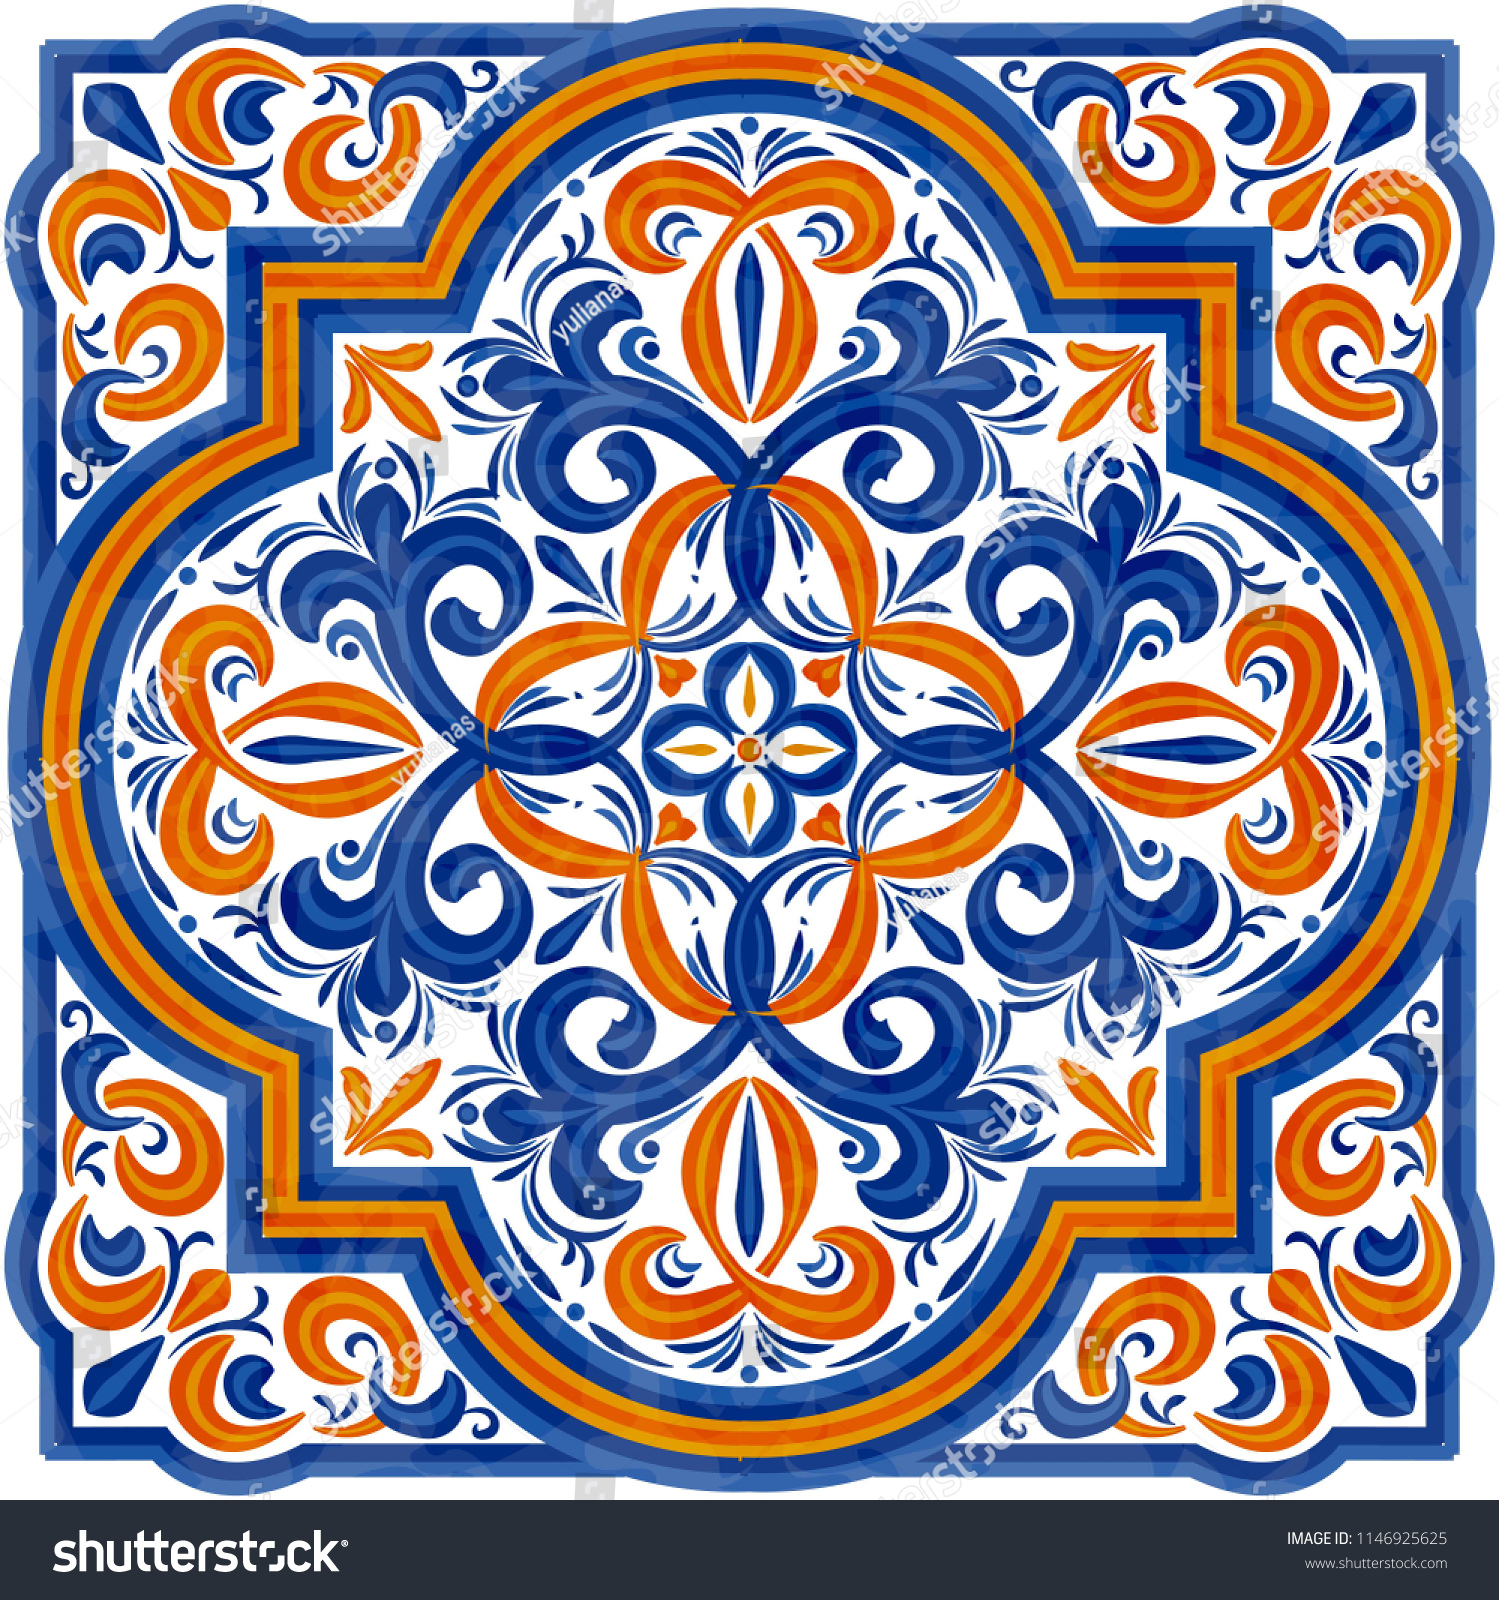 https www shutterstock com image vector traditional portugal azulejos tile blue yellow 1146925625